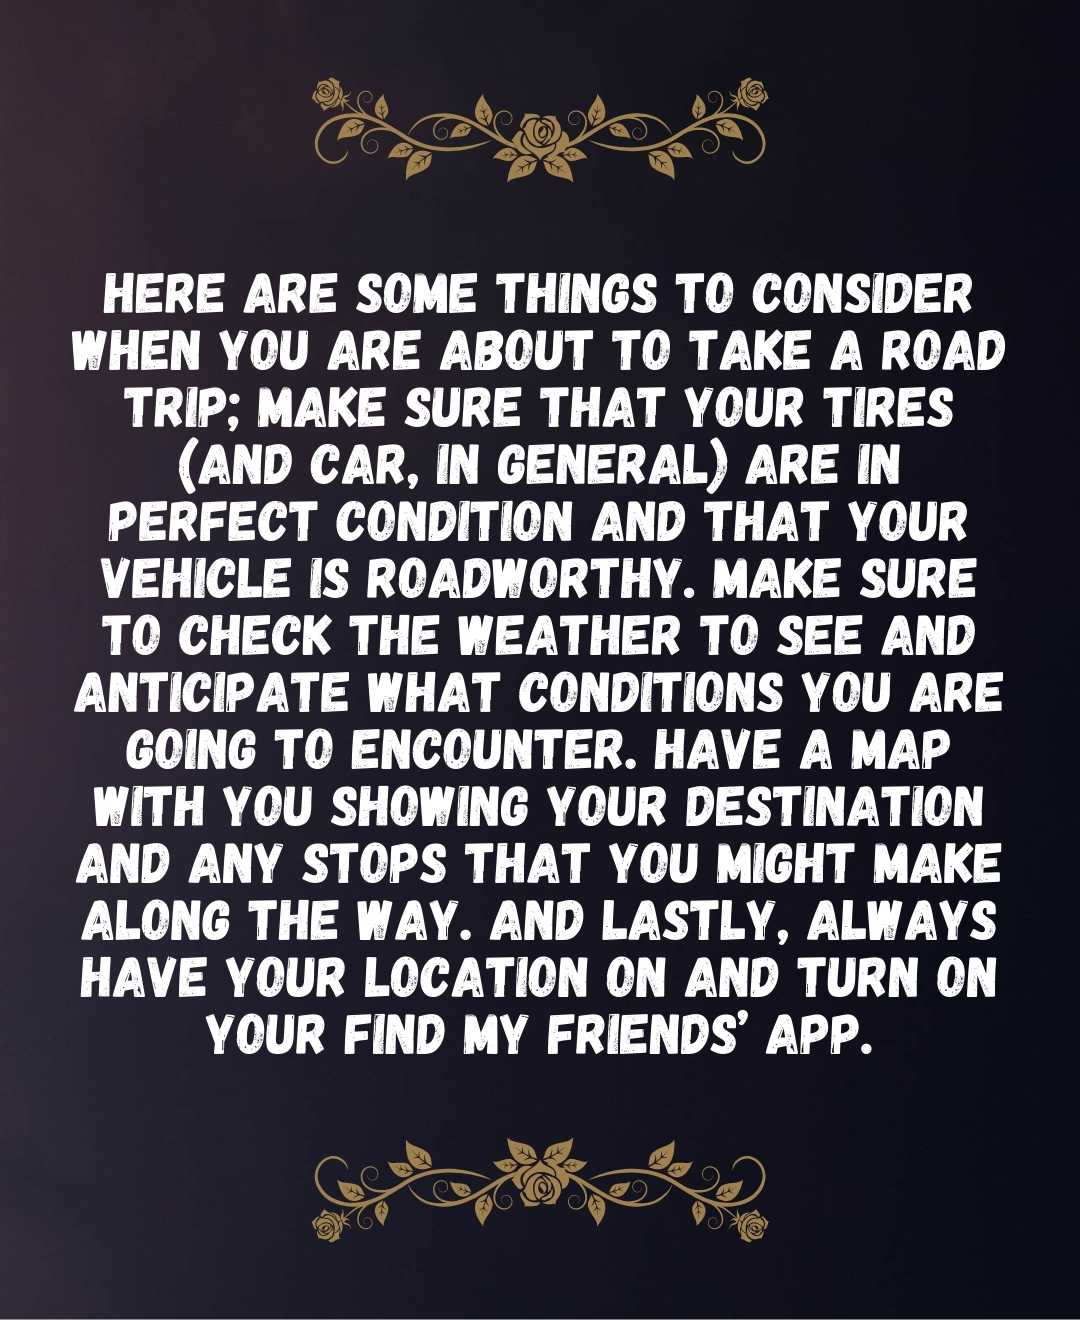 Here are some things to consider when you are about to take a road trip; make sure that your tires (and car, in general) are in perfect condition and that your vehicle is roadworthy. Make sure to check the weather to see and anticipate what conditions you are going to encounter.